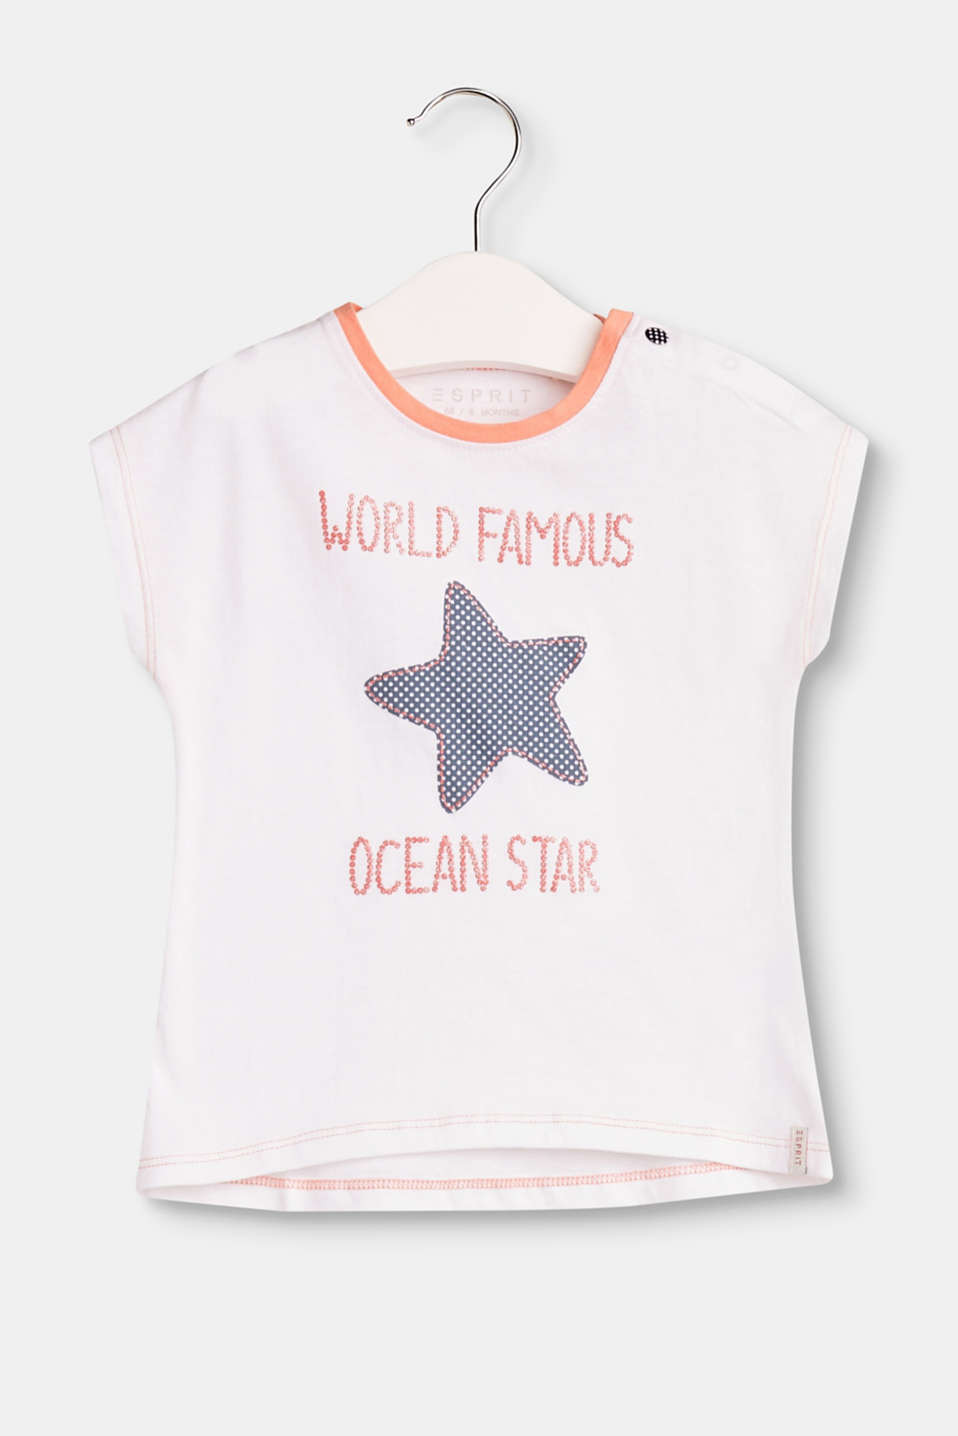 This T-shirt in soft cotton jersey with a partially glittering starfish slogan print is incredibly cute.